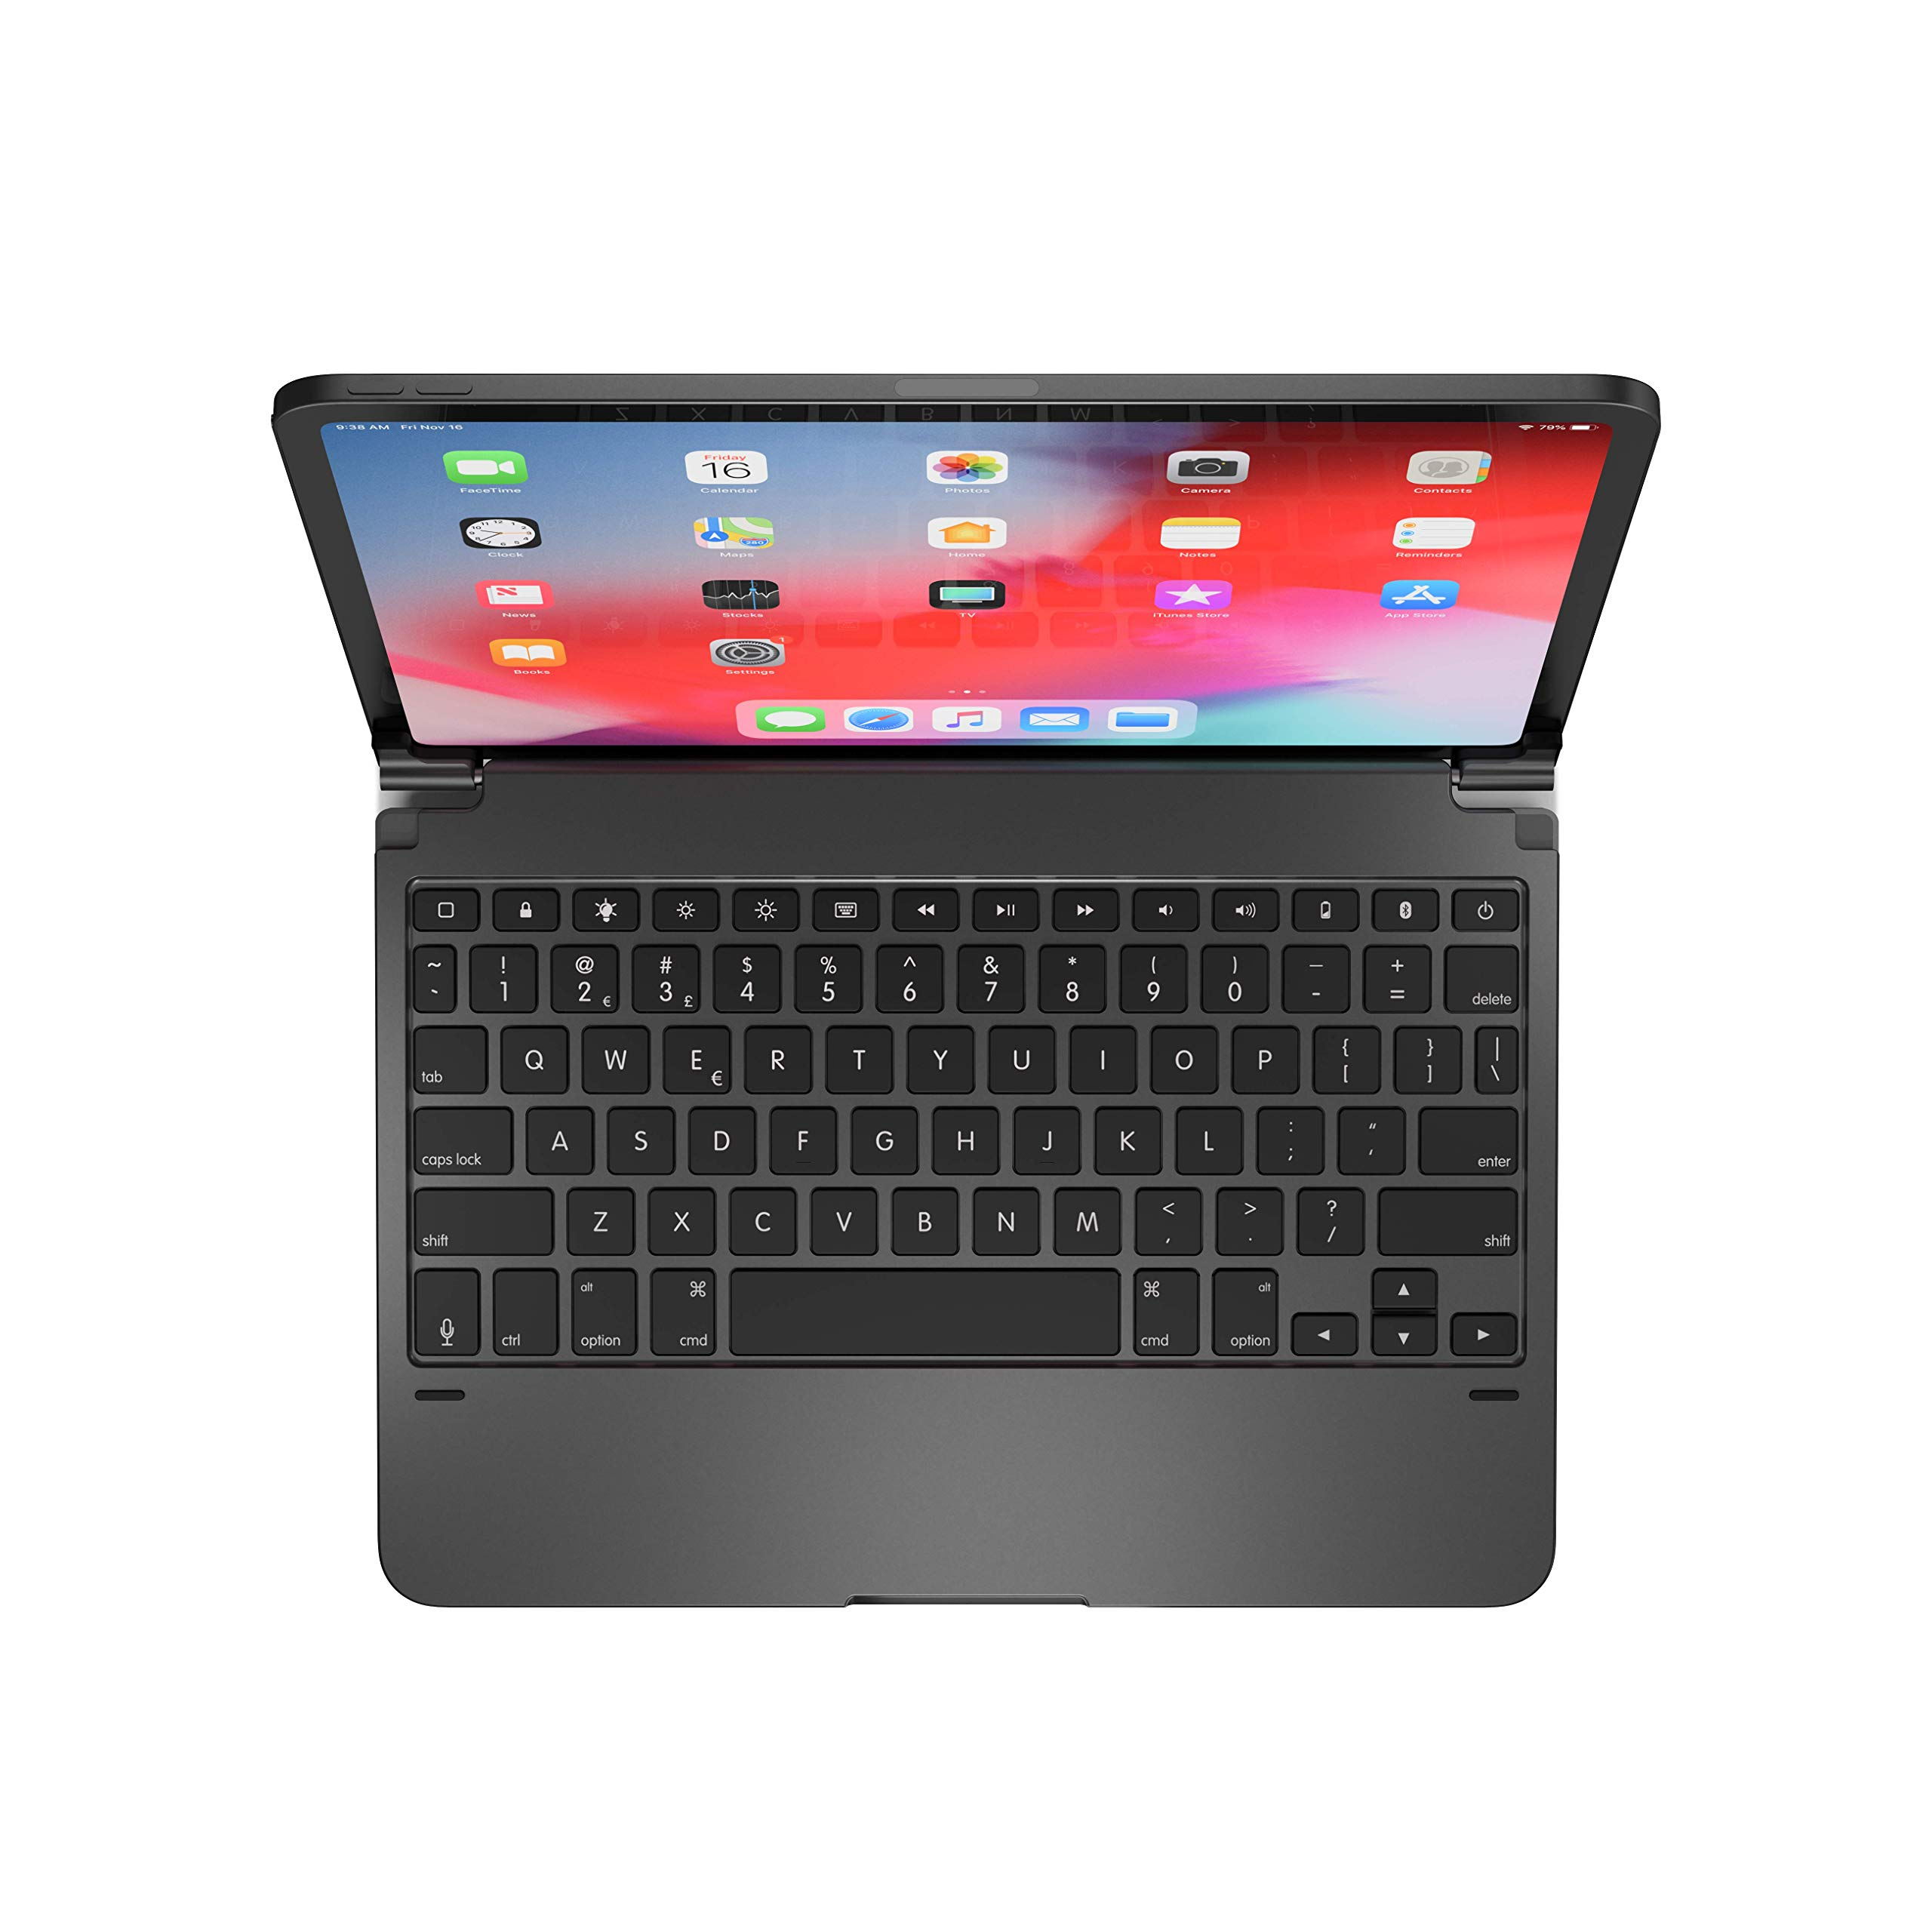 Brydge Pro 11.0 Keyboard for 11.0-inch iPad Pro 3rd Generation 2018 Model | Aluminum Wireless Bluetooth Keyboard with Backlit Keys | Long Battery Life | (Space Gray) by Brydge (Image #1)